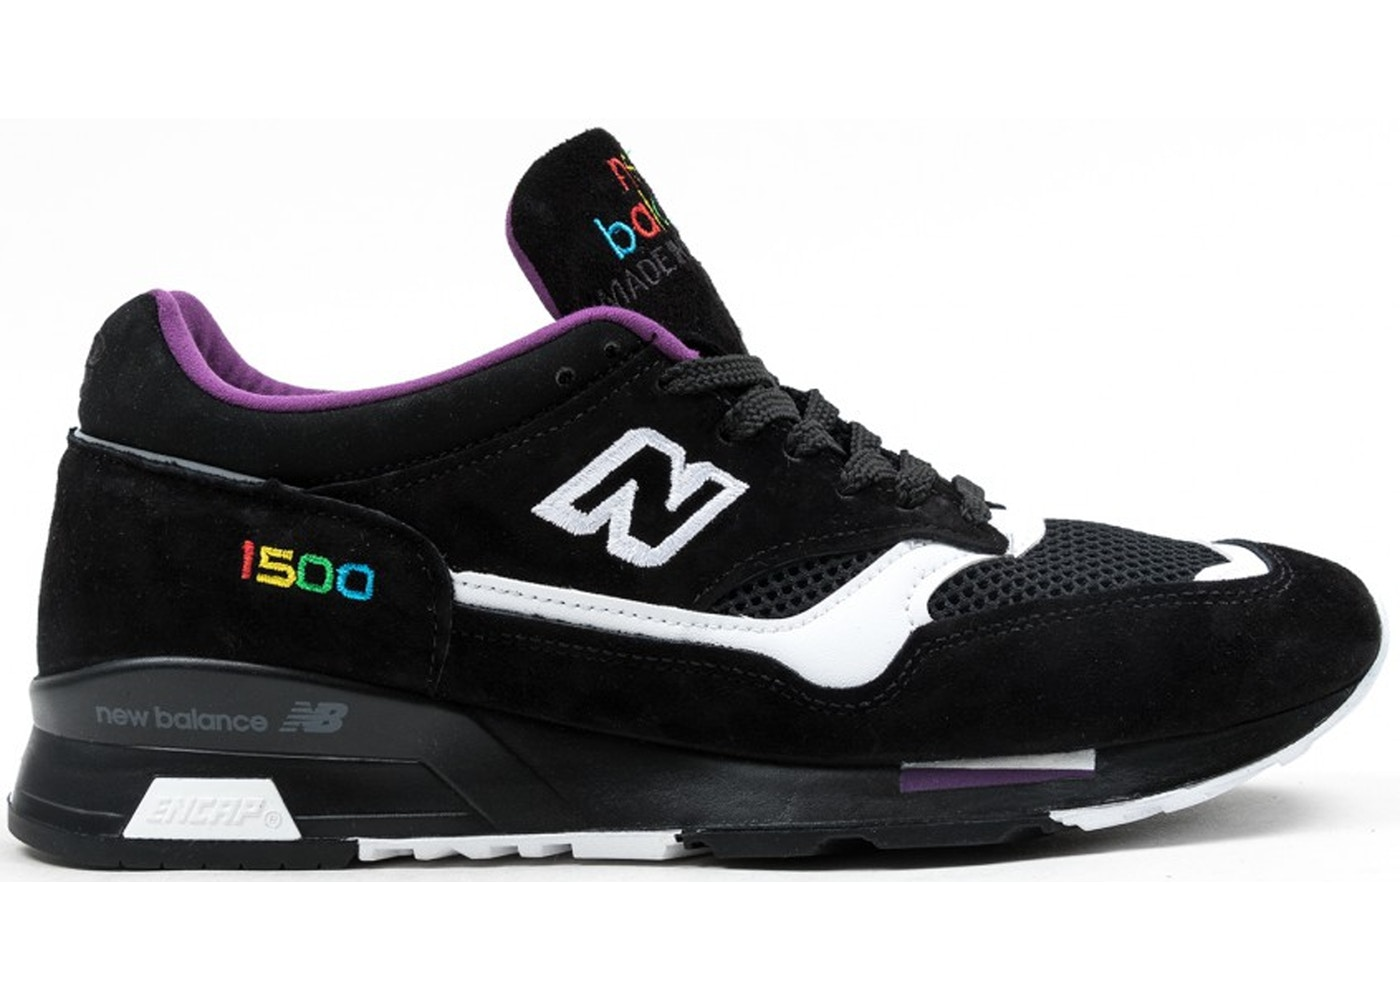 buy popular 348e2 f5f4f New Balance 1500 Prism Black